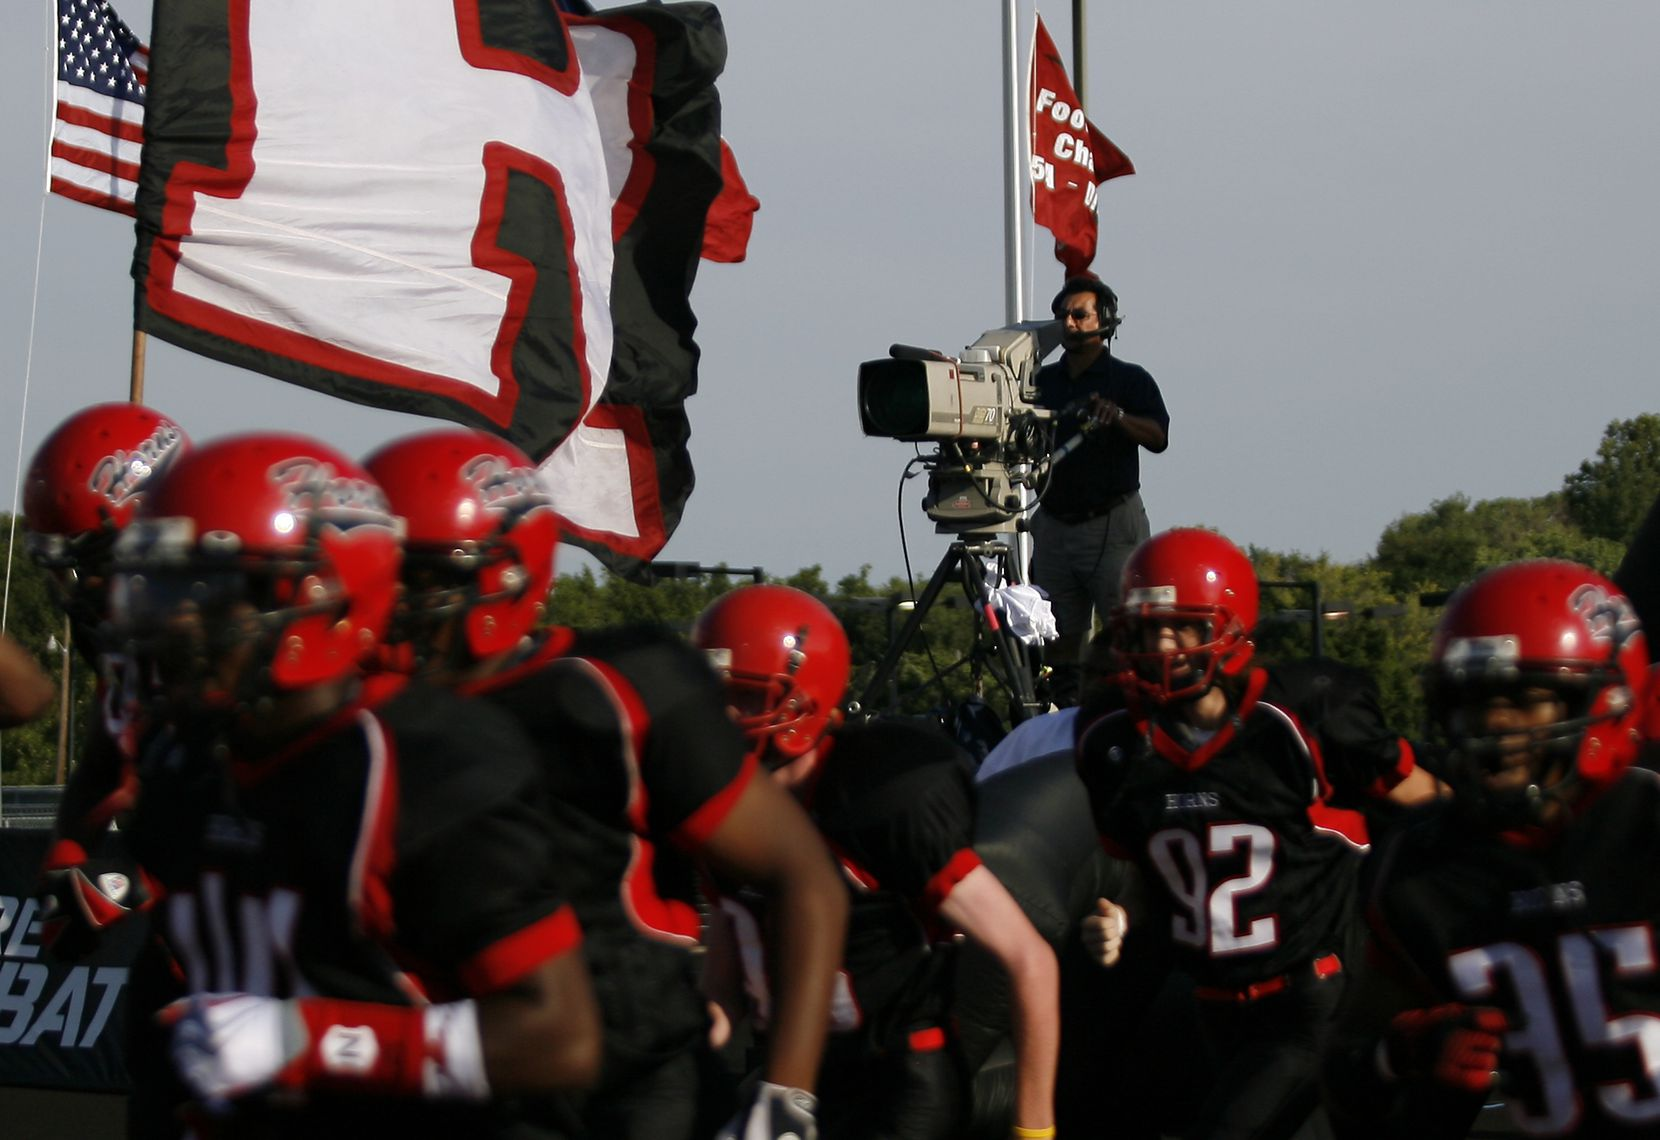 ESPN has televised several high school football games in the Dallas area over the years, including this 2009 game between Cedar Hill and DeSoto.